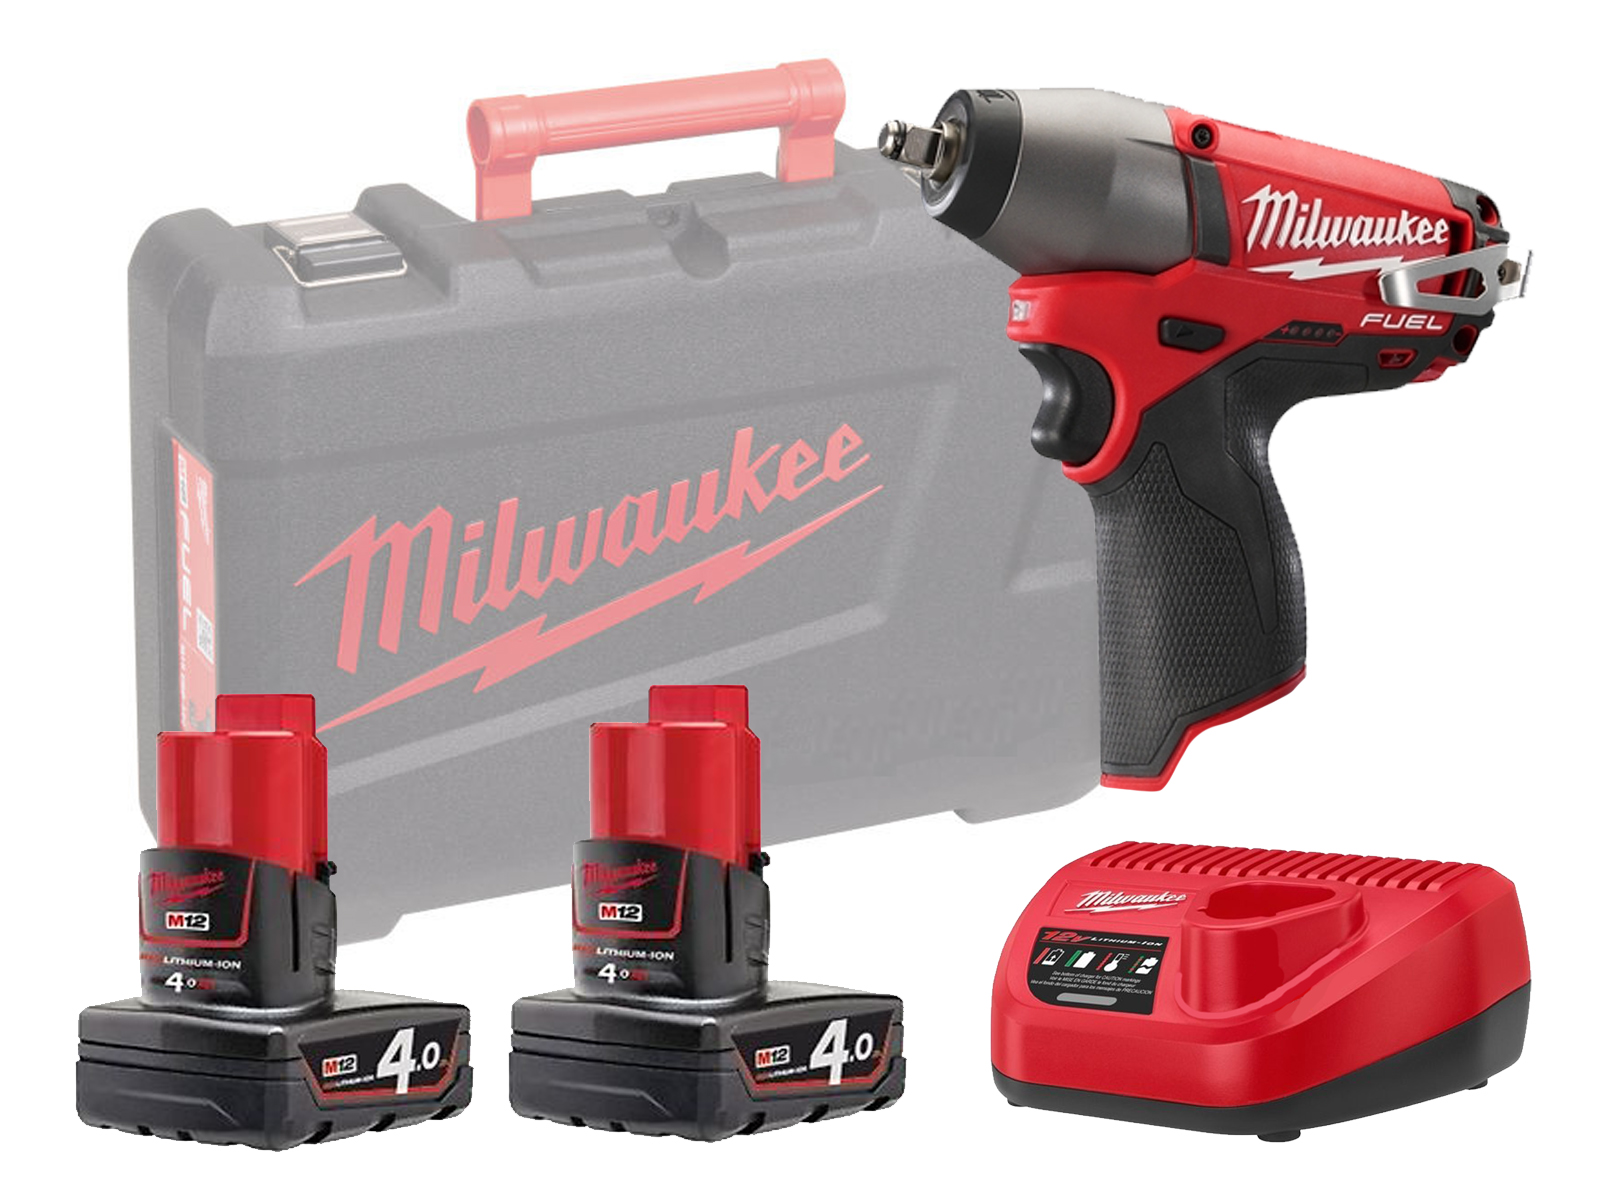 "MILWAUKEE 12V FUEL IMPACT WRENCH 1/2"" - M12CIW12 - 4.0AH PACK"